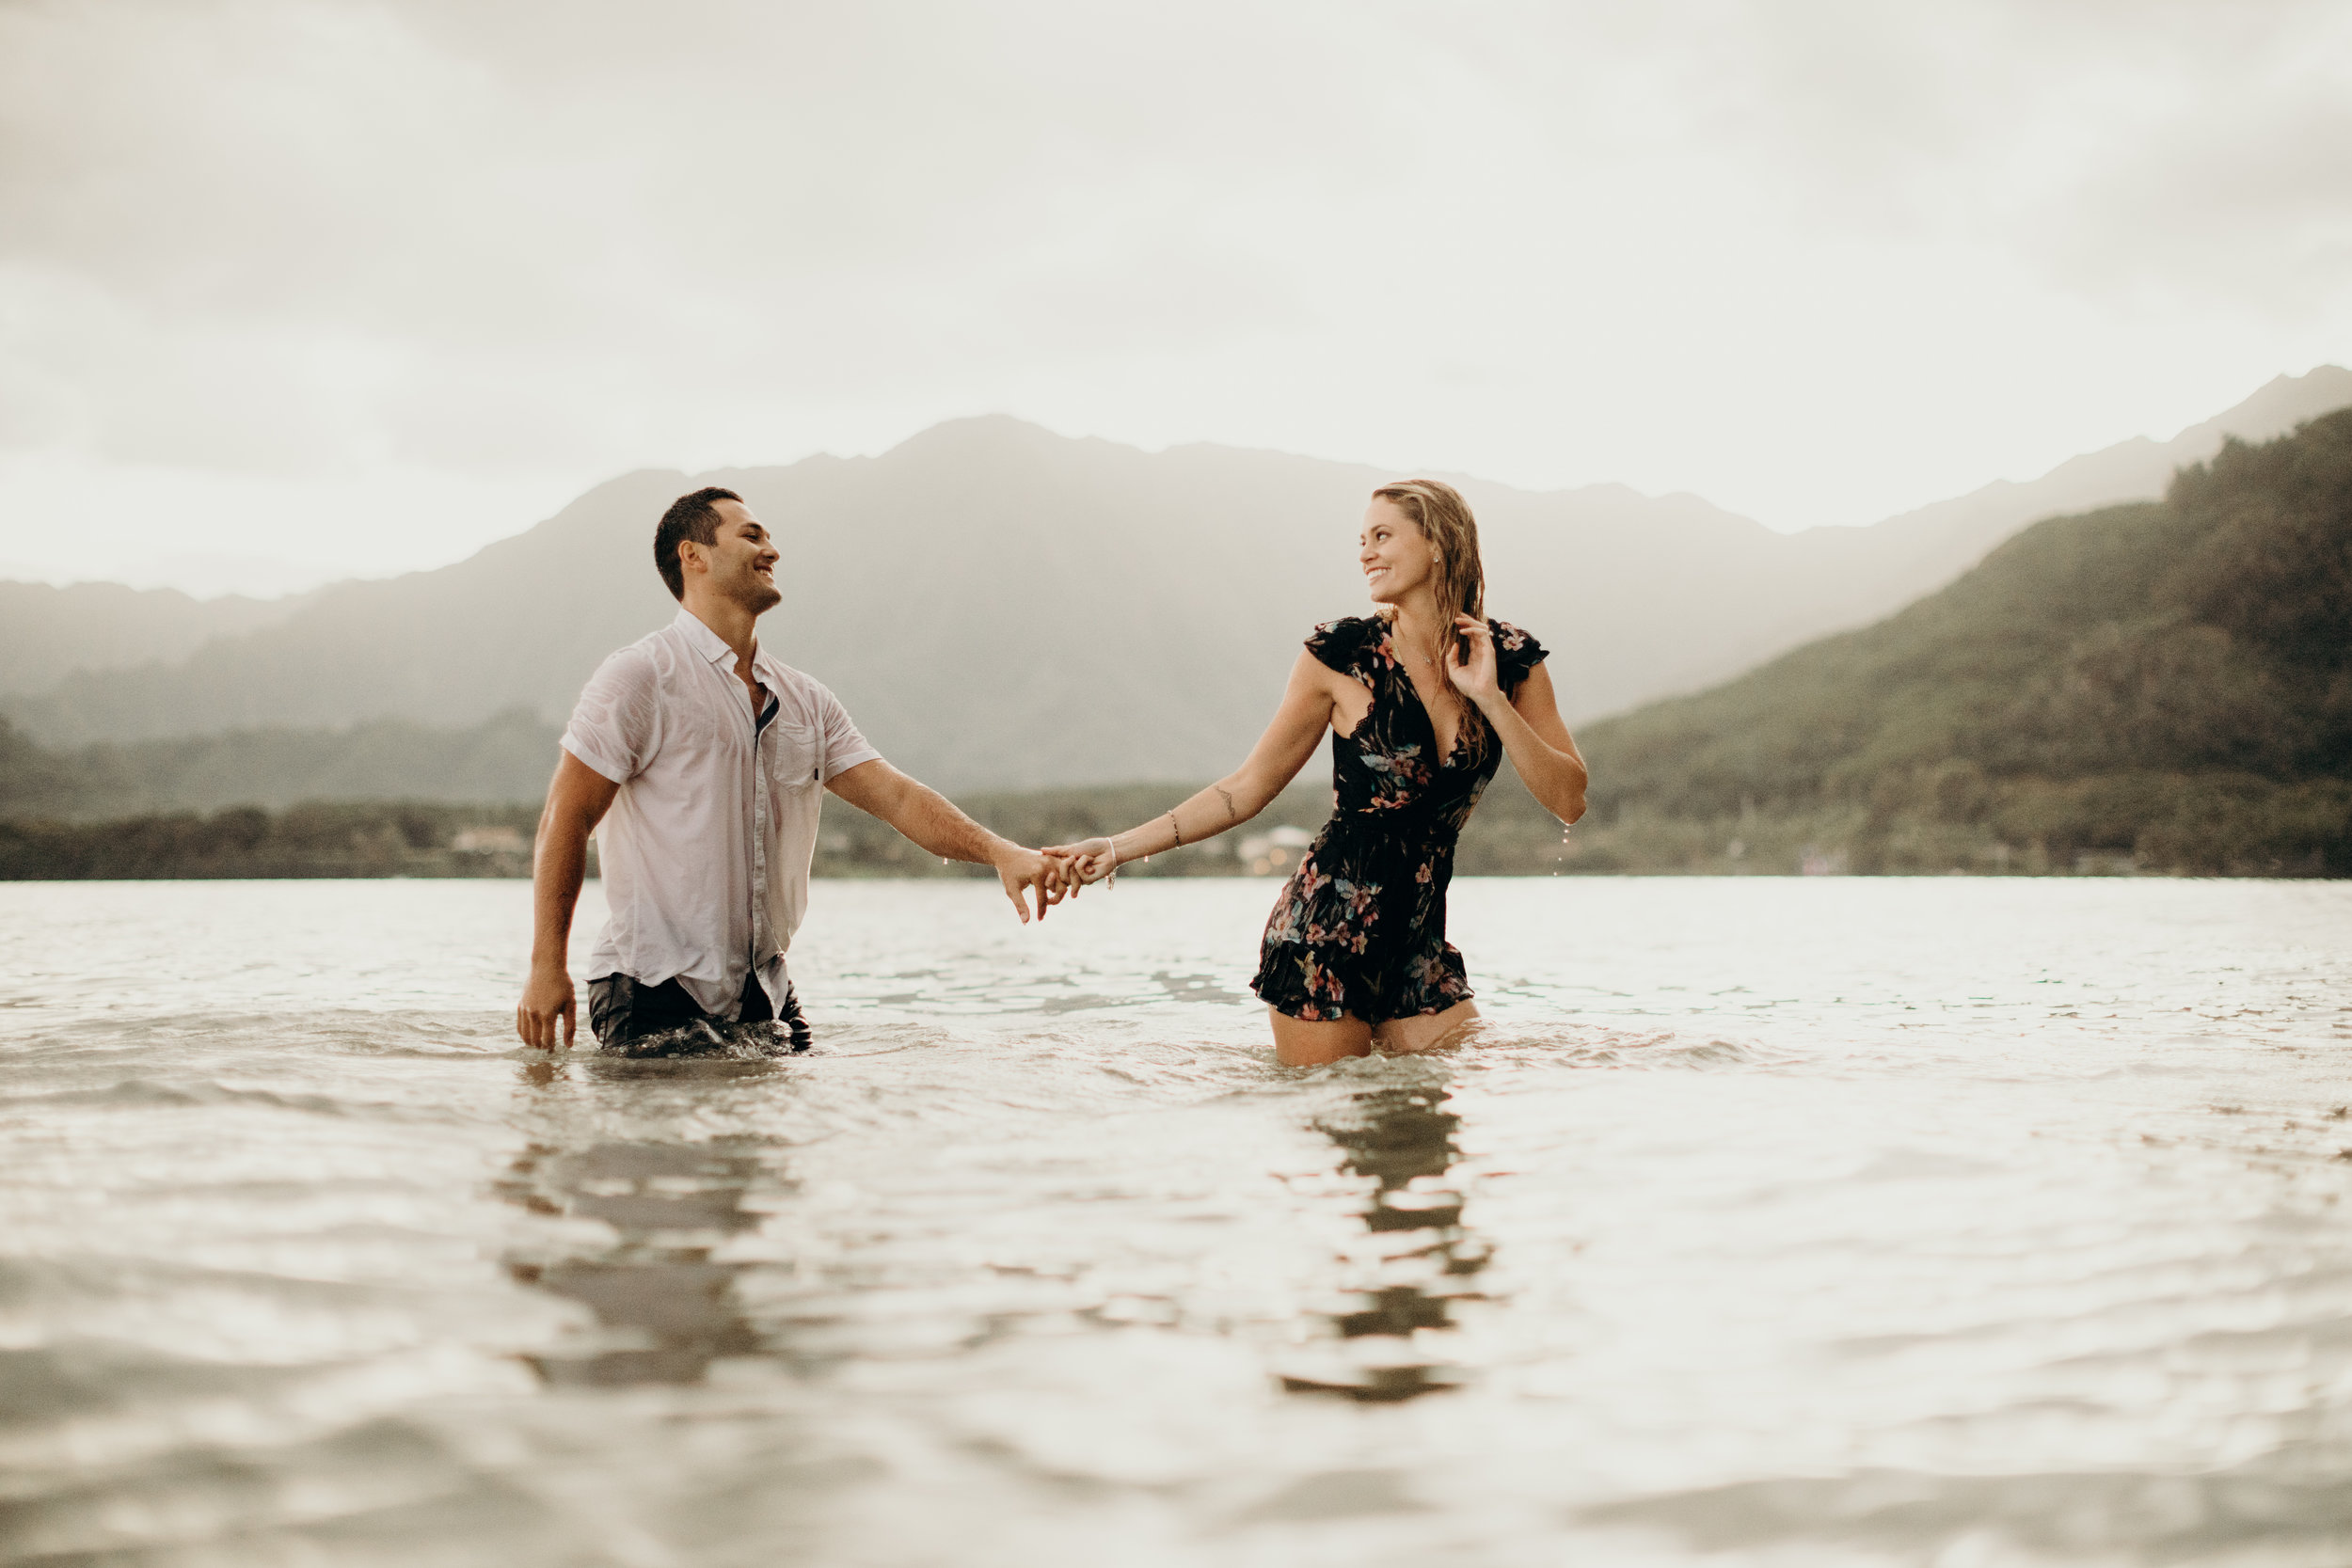 hawaii-engagement-photographer-keani-bakula-kualoa-ranch-34.jpg